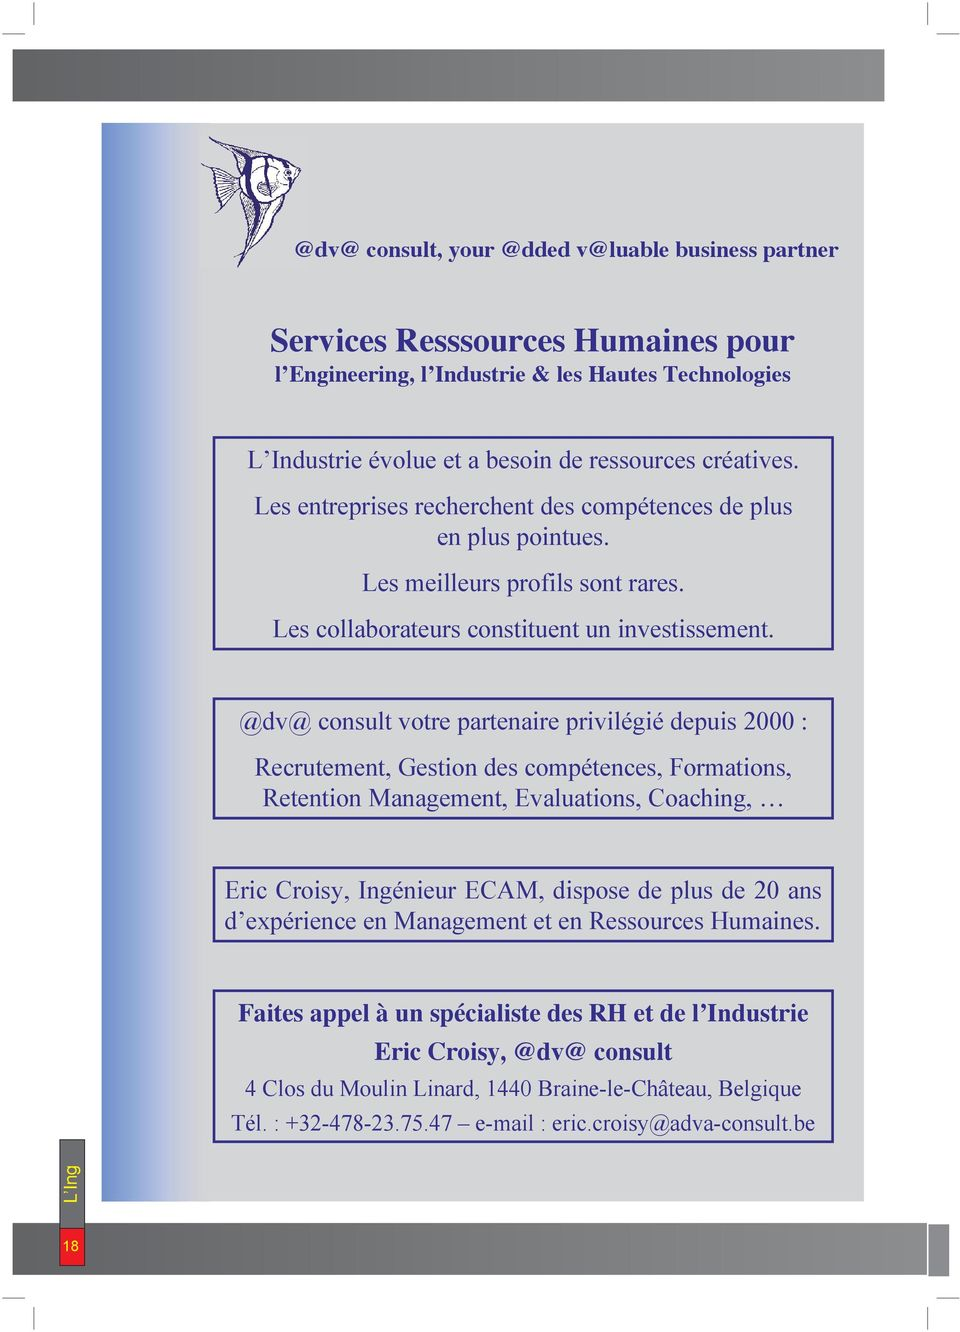 @dv@ consult votre partenaire privilégié depuis 2000 : Recrutement, Gestion des compétences, Formations, Retention Management, Evaluations, Coaching, Eric Croisy, Ingénieur ECAM, dispose de plus de